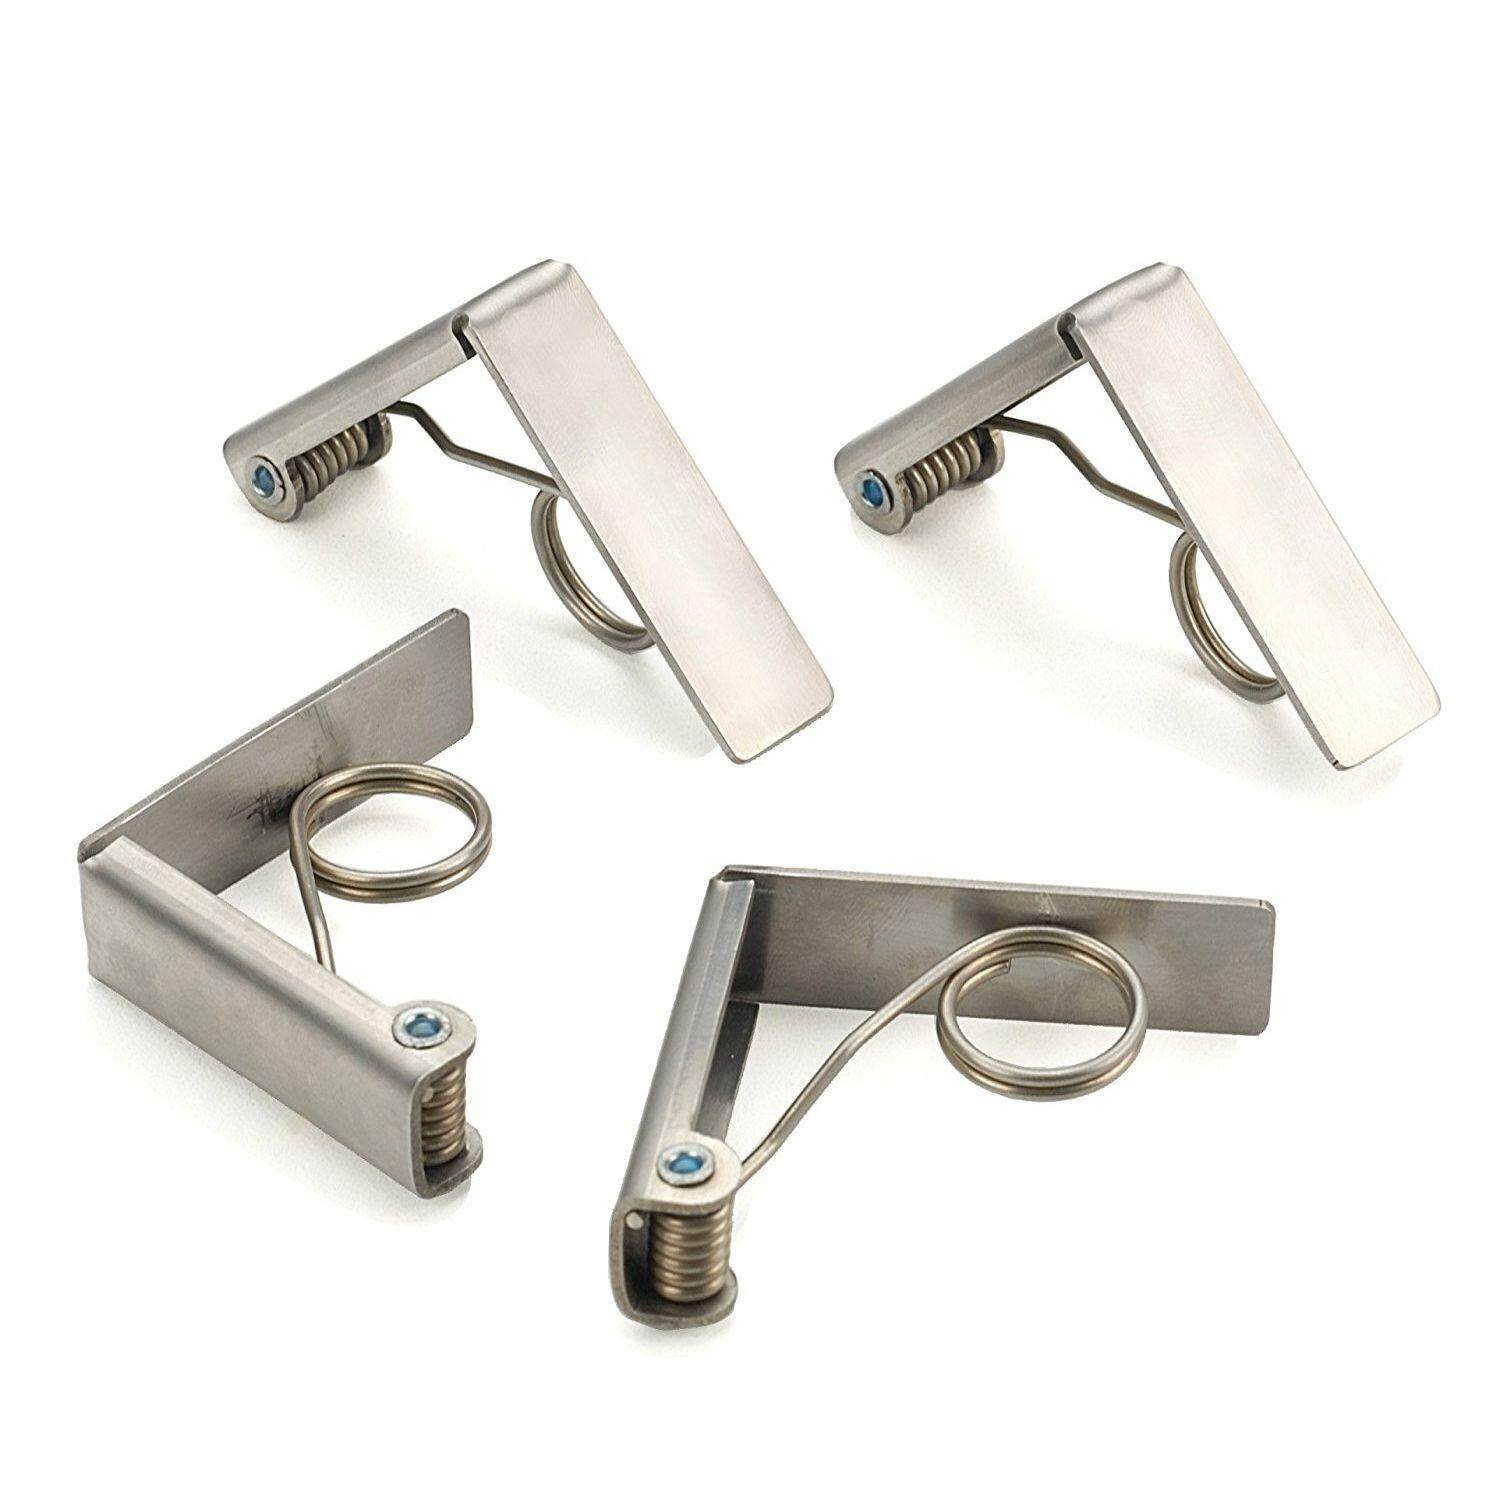 Endurance Stainless Steel Tablecloth Clips, Set of 4,Silver Free Shipping